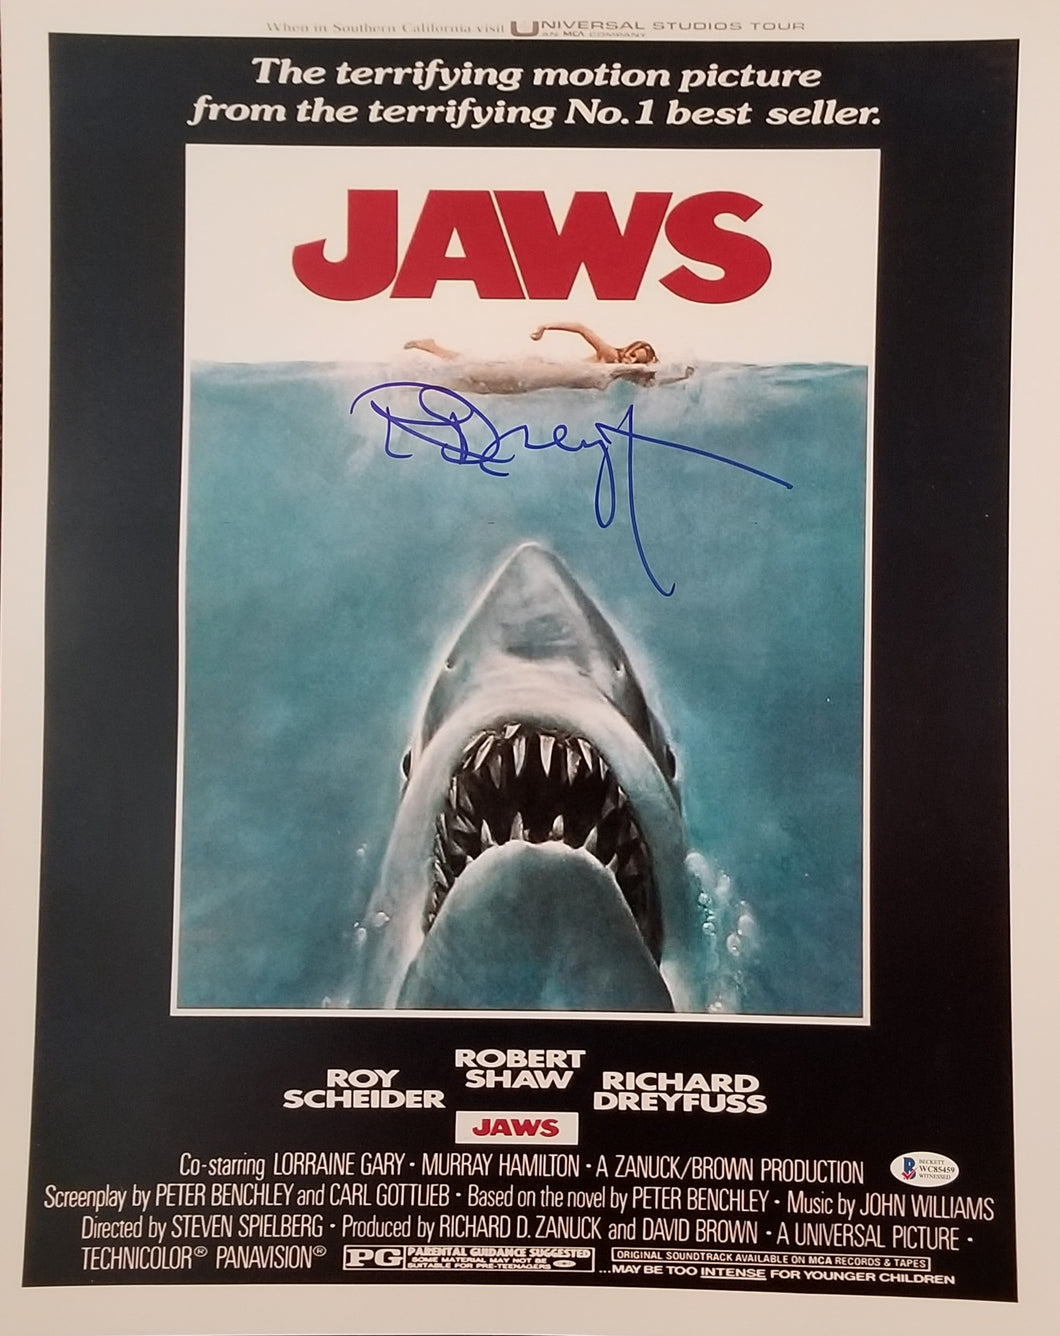 Richard Dreyfuss - Signed JAWS 16x20 Movie Poster Photo